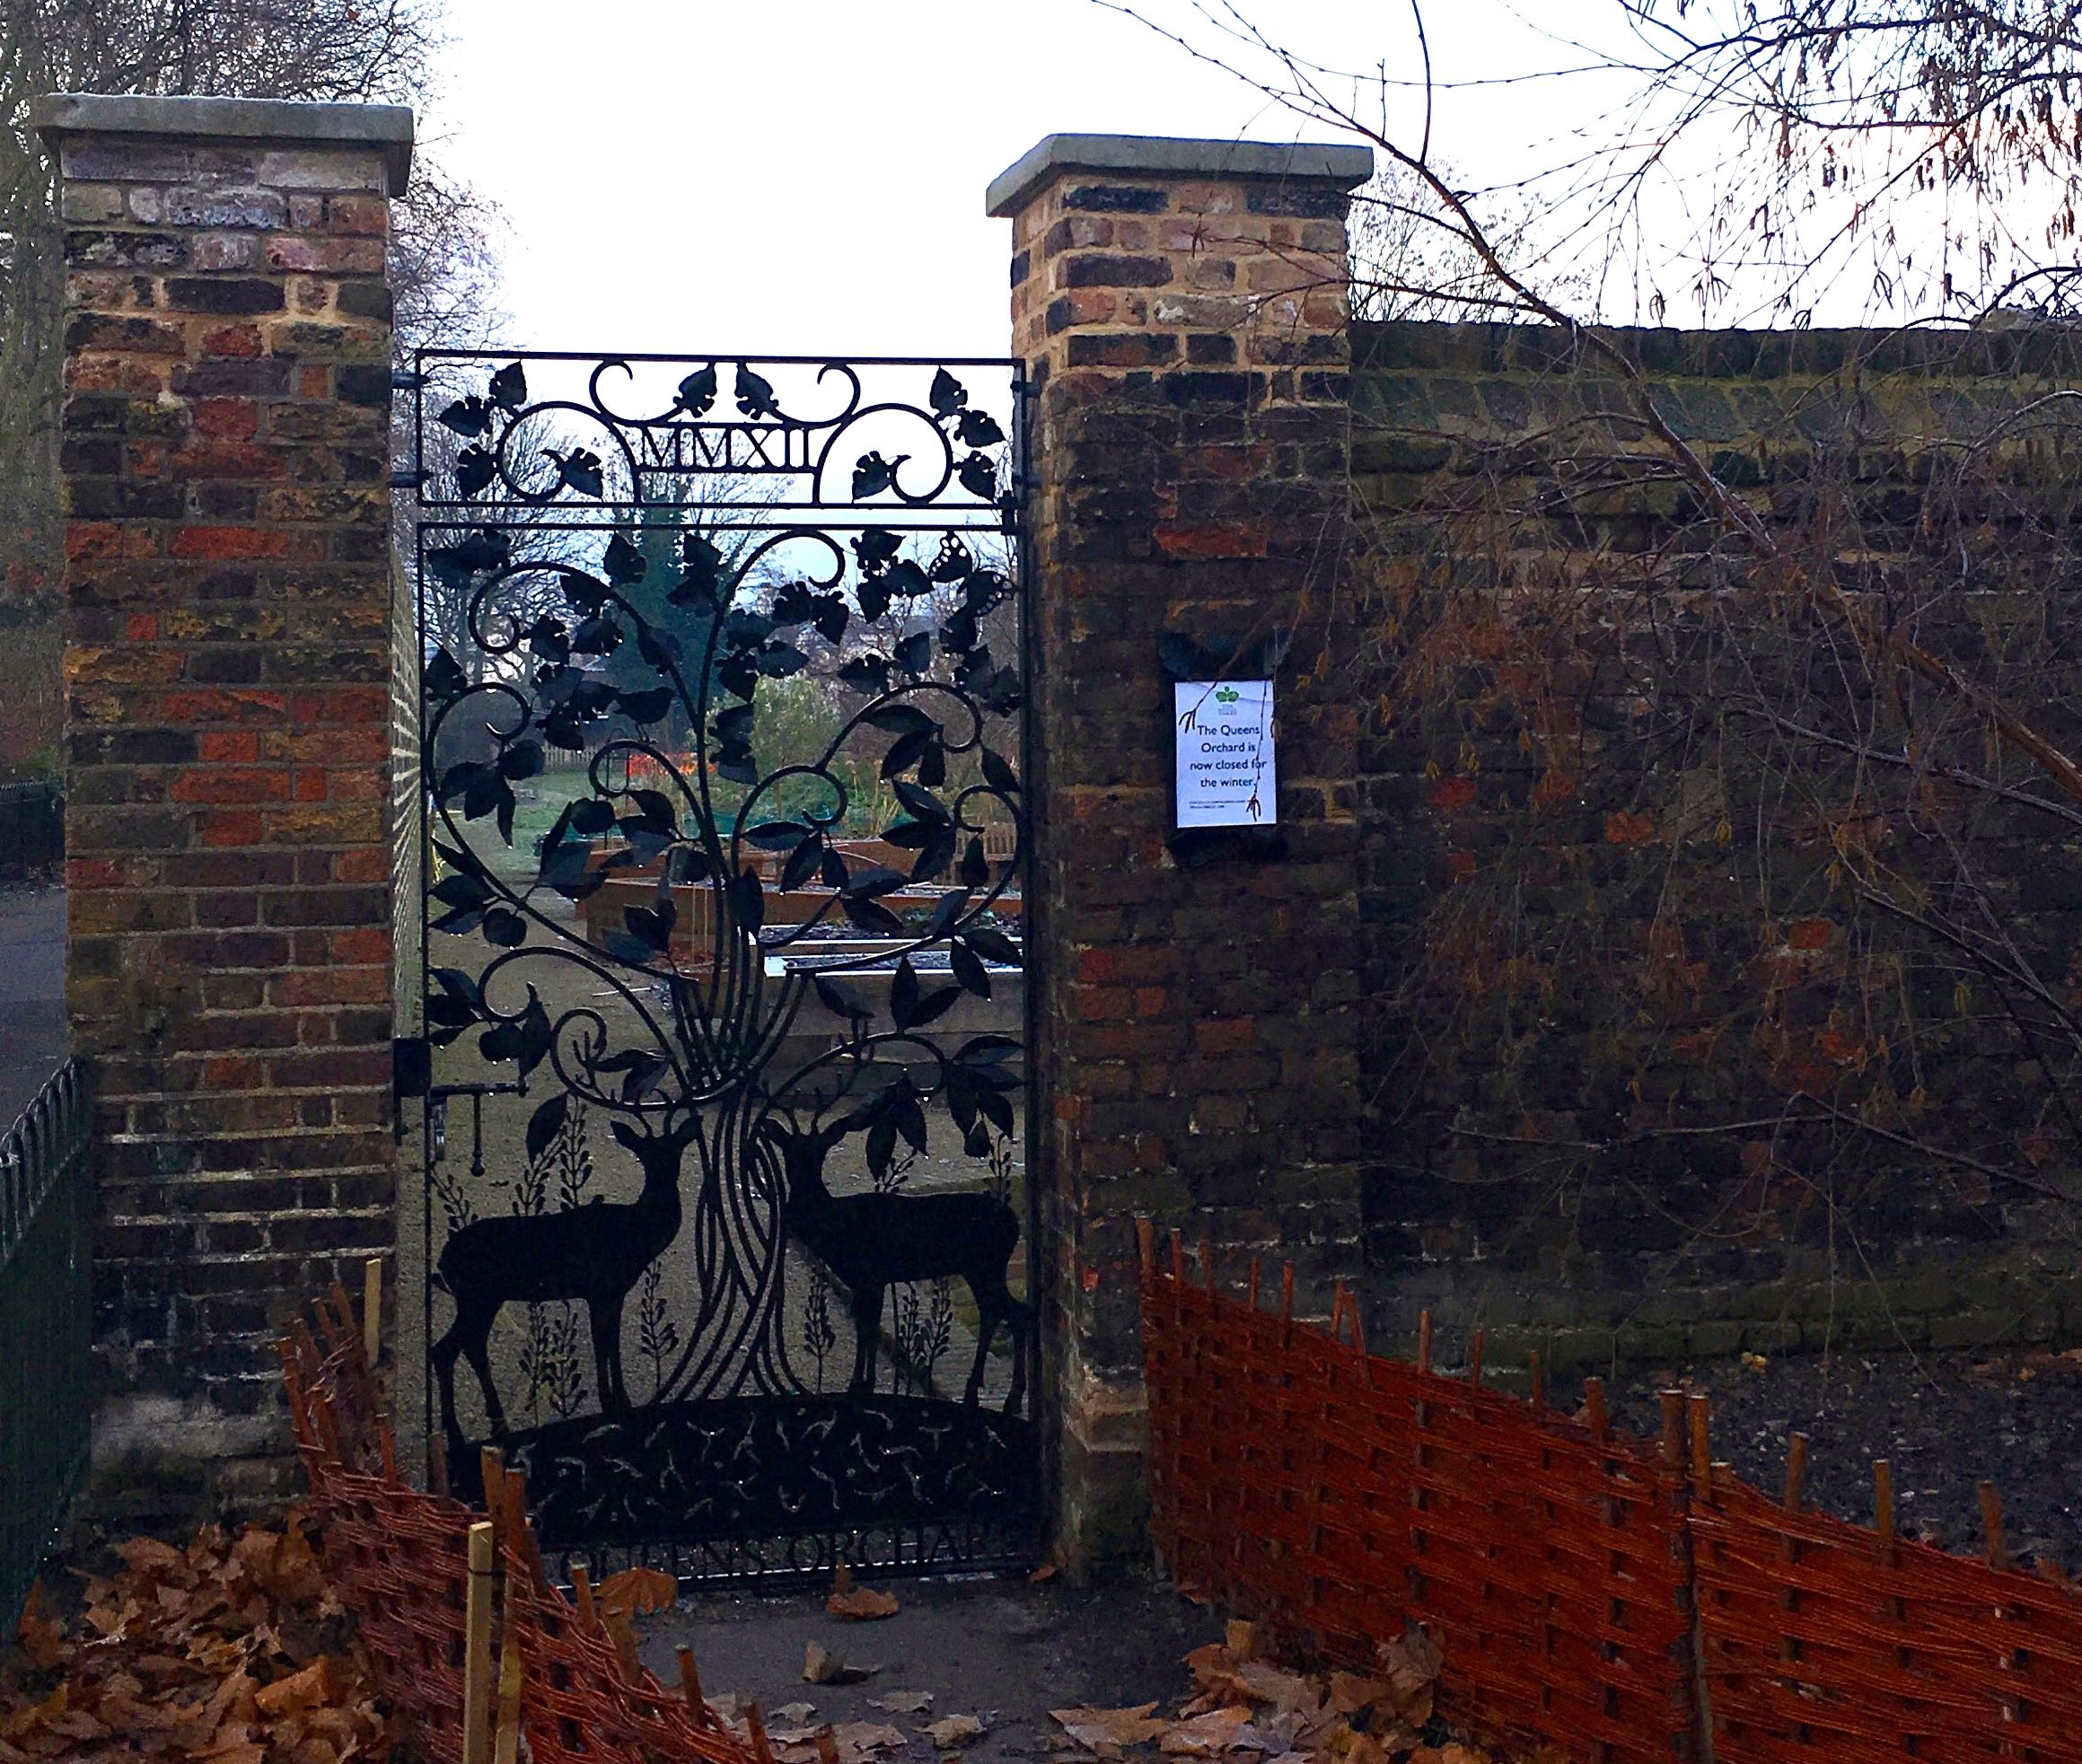 The Queen's Orchard in Greenwich Park - a new discovery for me this month - but one with a fantastic gate